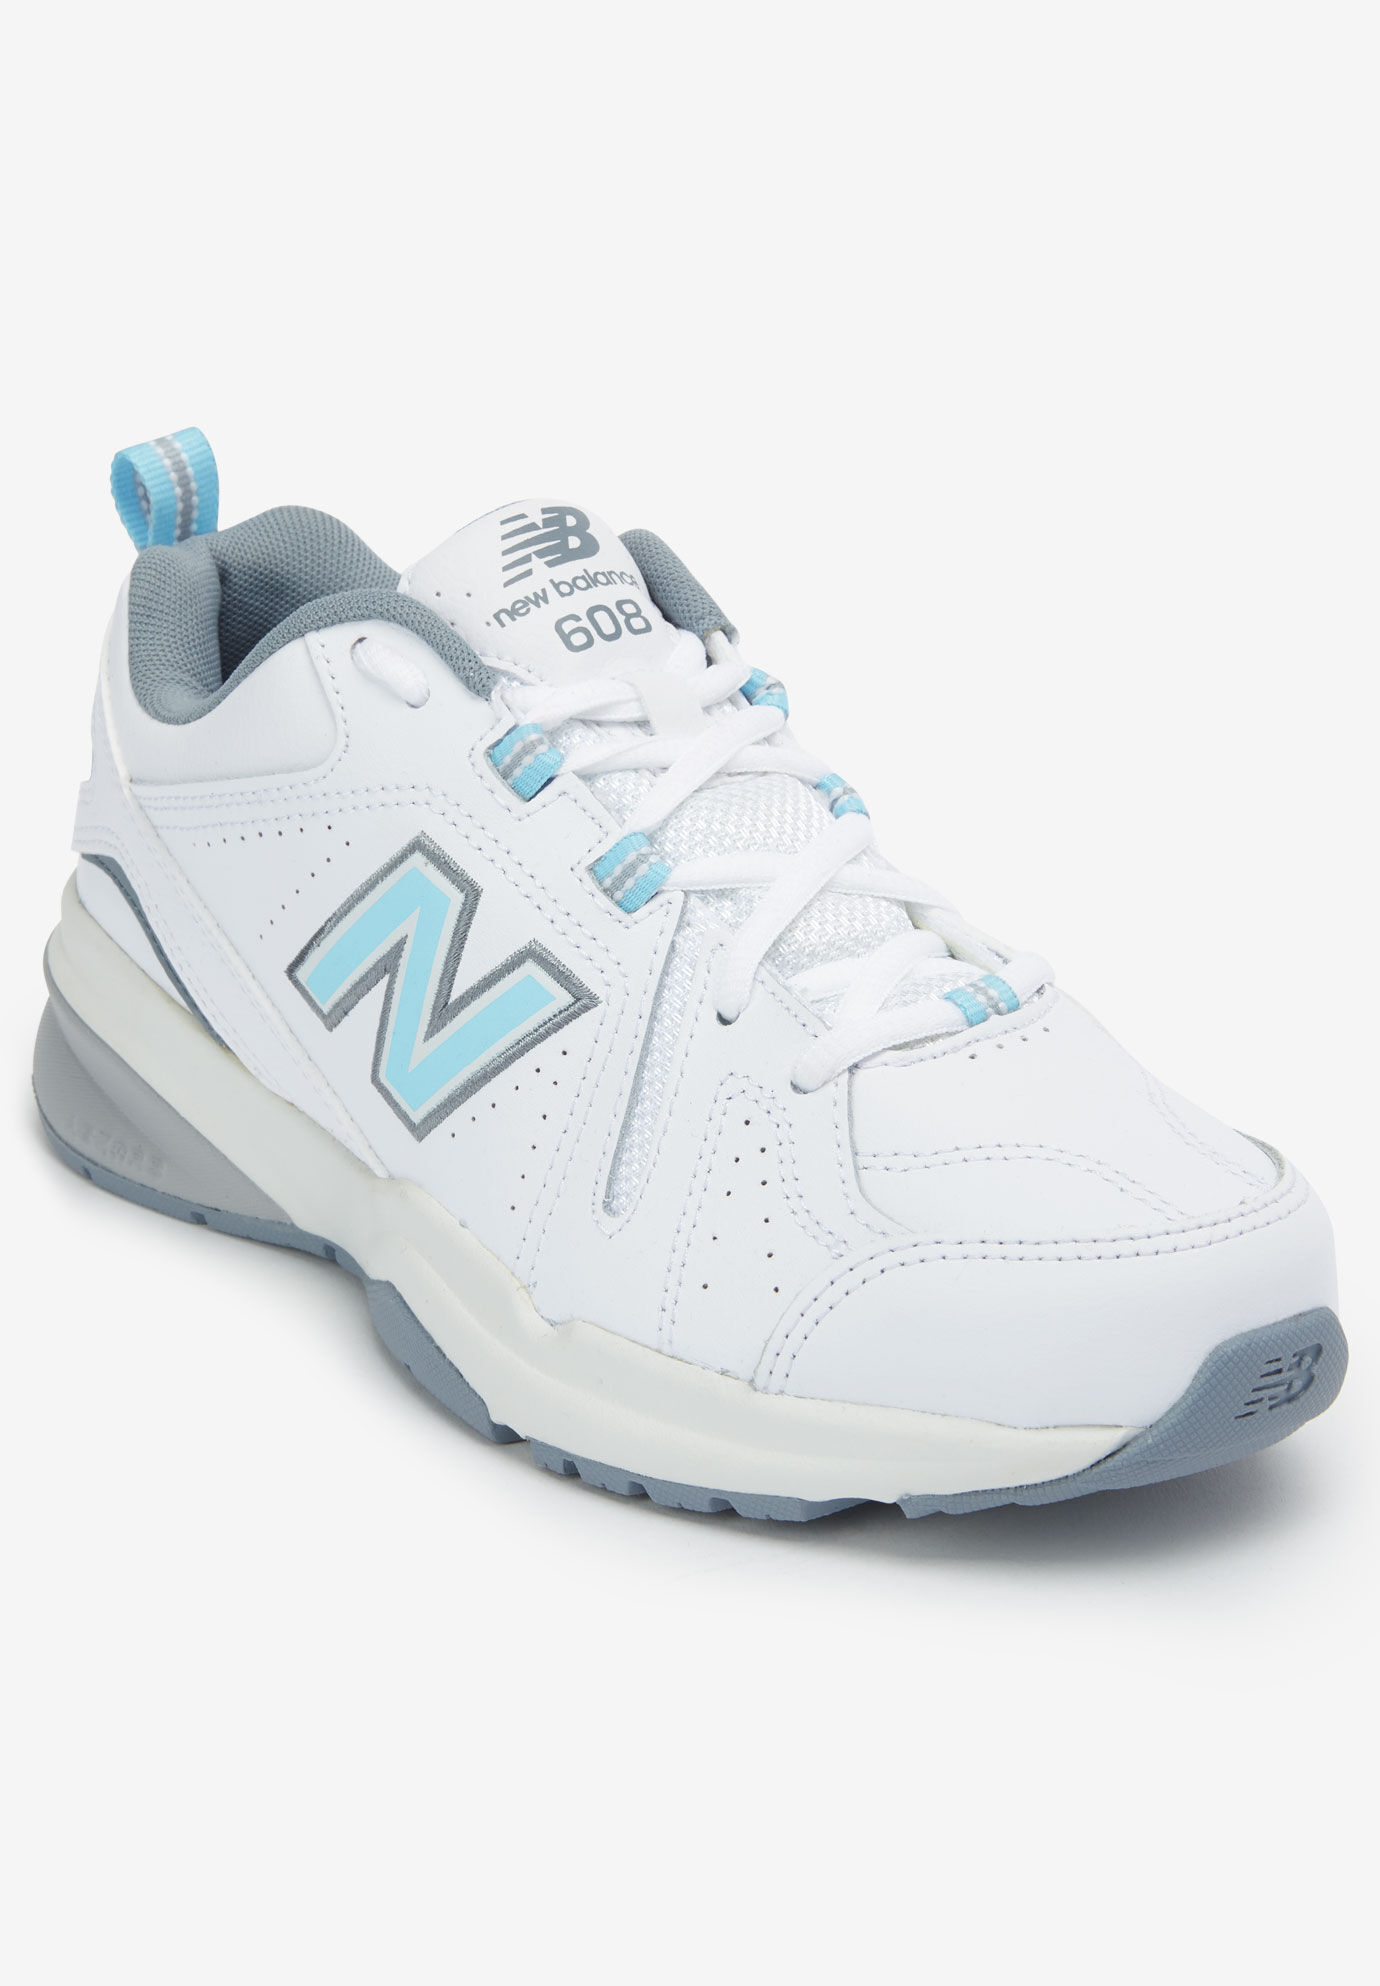 Wide Width Women's Shoes by New Balance